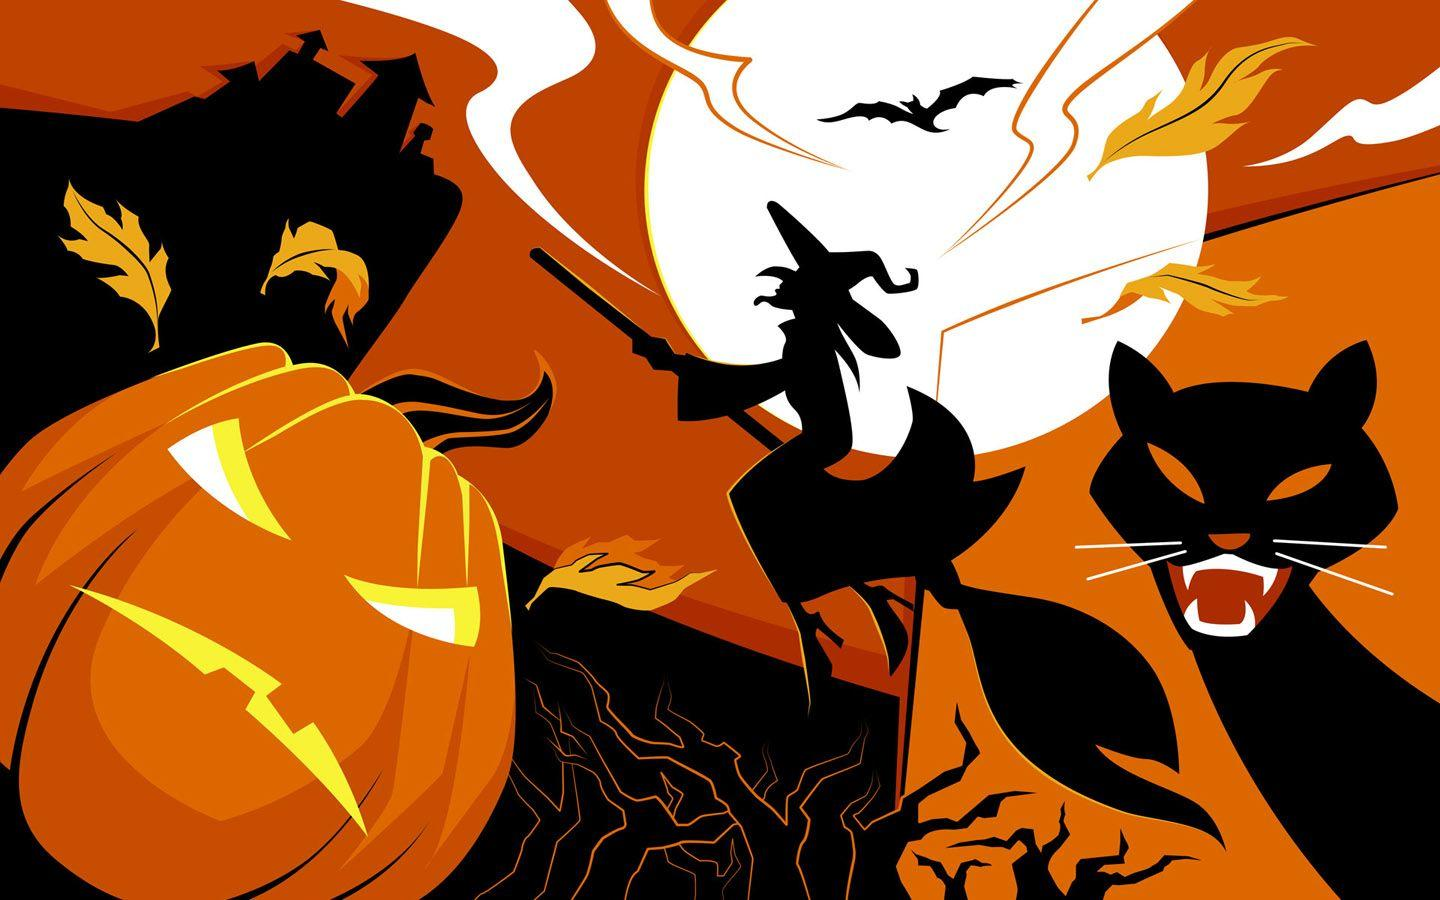 Scary Halloween 2012 HD Wallpapers | Pumpkins, Witches, Spider Web ...